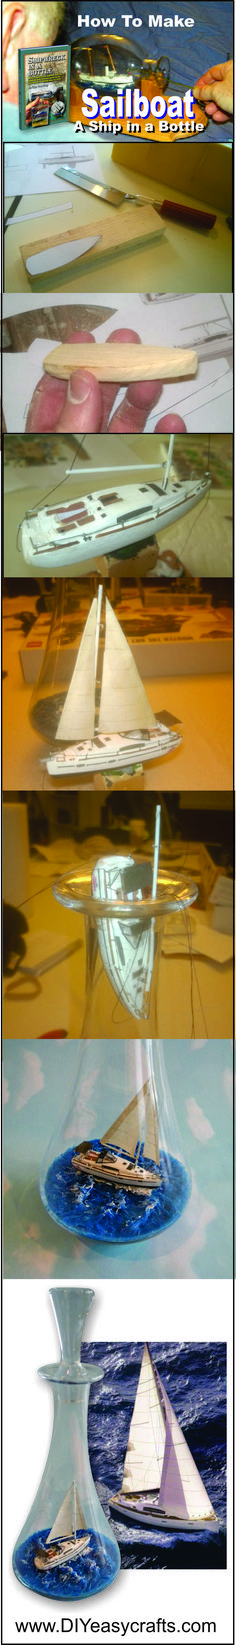 How to build a Ship in a Bottle Sailboat. This short video shows the process of building one of these miniature sailboats. Its not as hard as it looks. With a little practice you can create your own maritime masterpiece. http://www.diyeasycrafts.com/